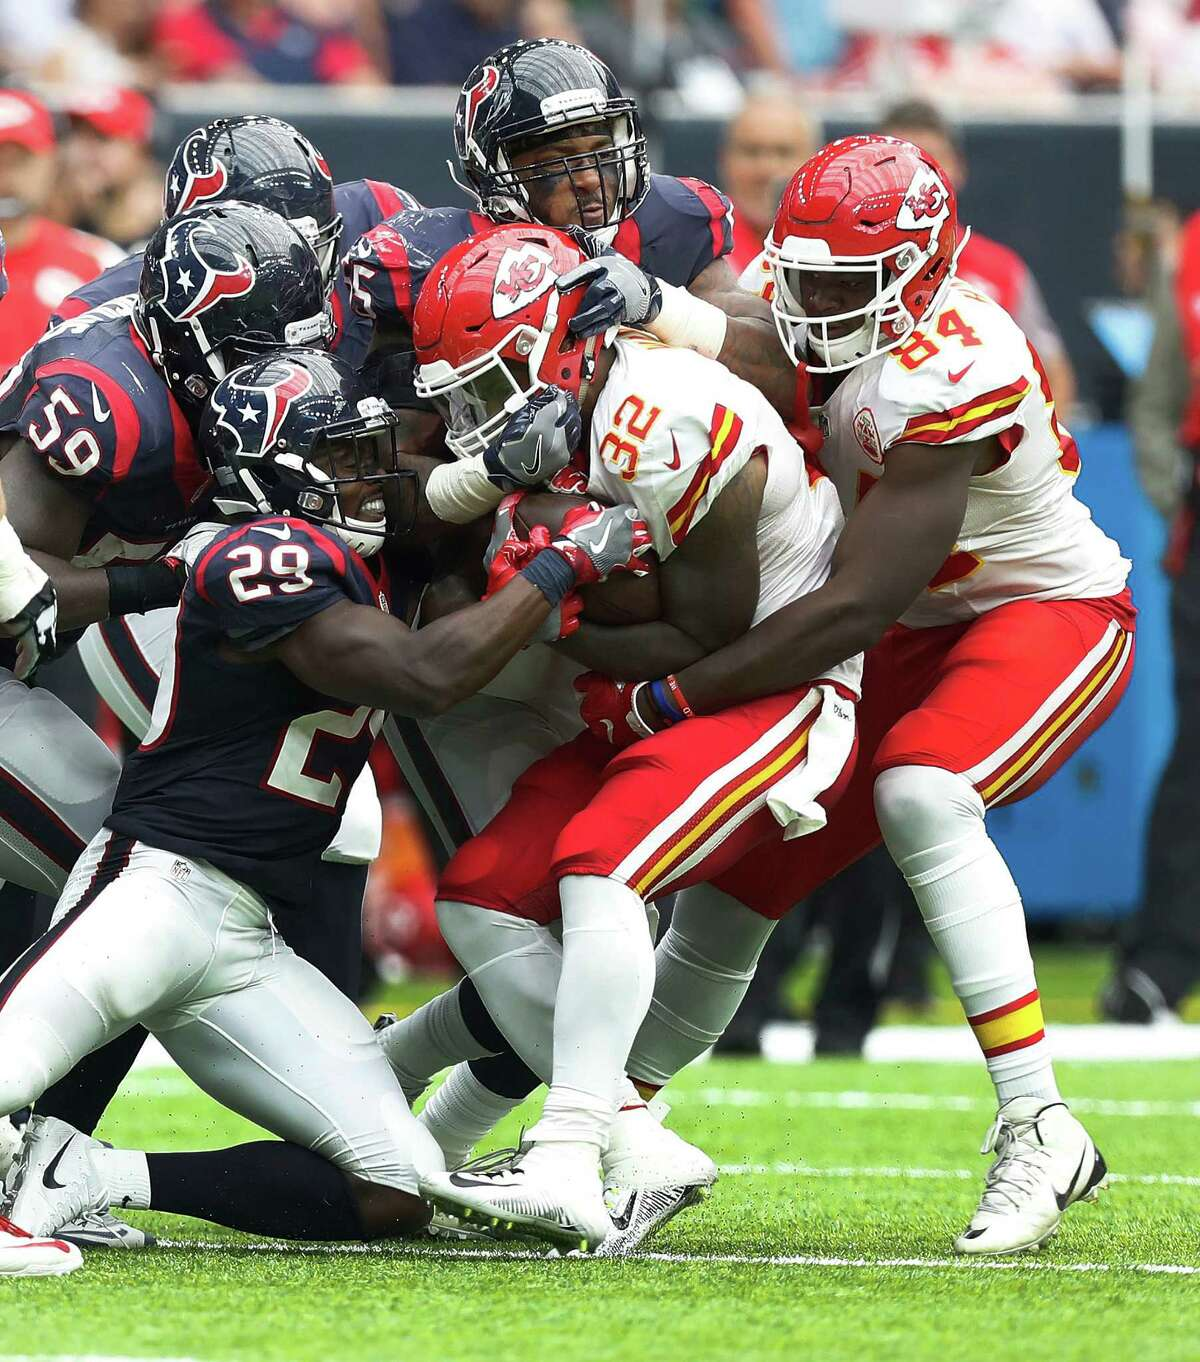 Kansas City Chiefs running back Spencer Ware (32) is surrounded by Houston Texans defense during the third quarter of an NFL football game at NRG Stadium, Sunday, Sept. 18, 2016 in Houston.